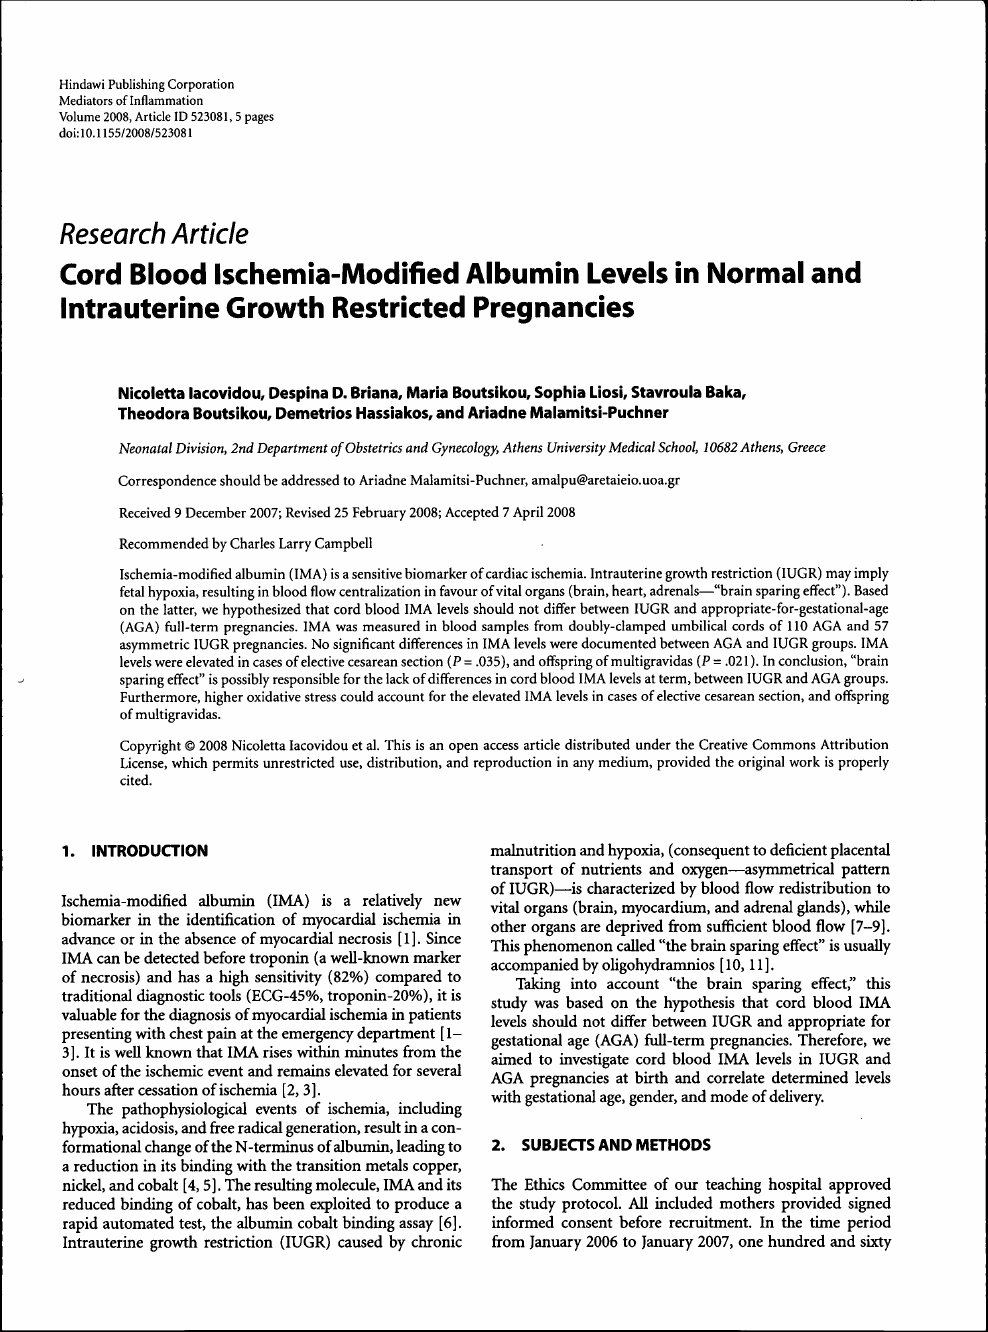 Cord Blood Ischemia-Modified Albumin Levels in Normal and